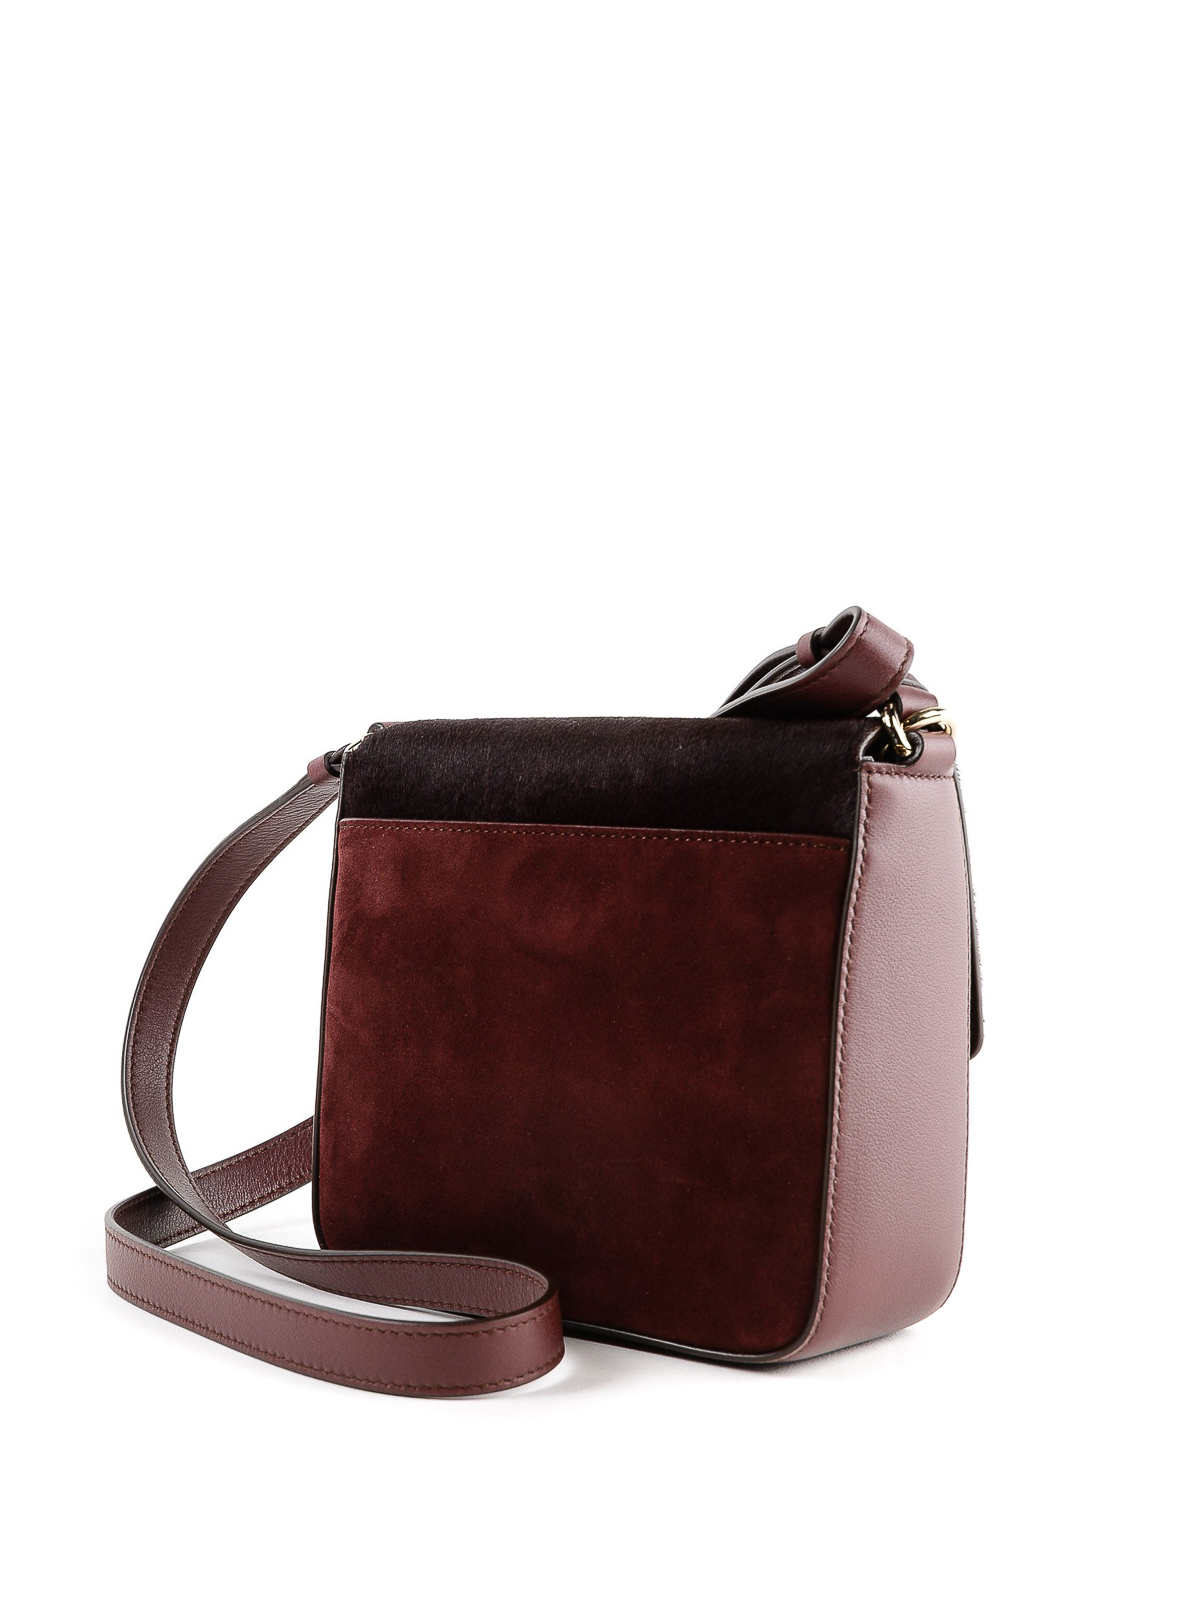 iKRIX SALVATORE FERRAGAMO  cross body bags - Lock suede and hair calf cross  body bag 70149a3dc0077